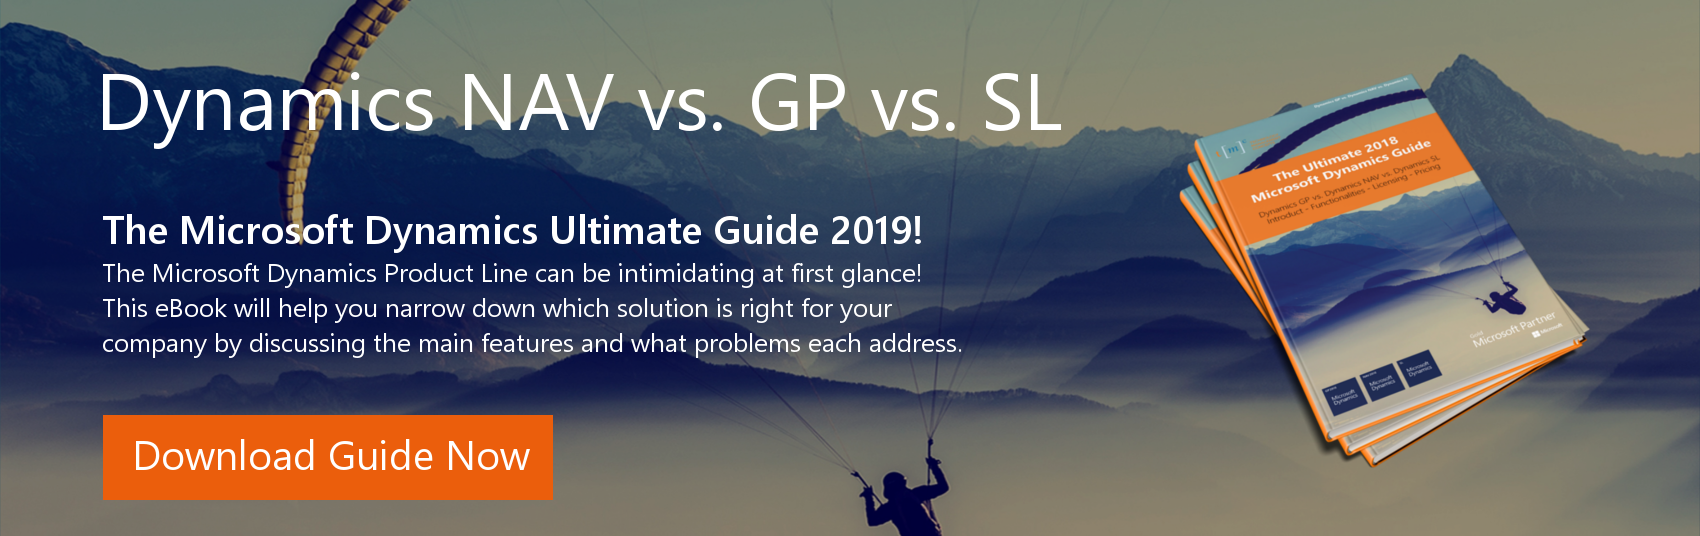 Dynamics NAV vs GP vs SL